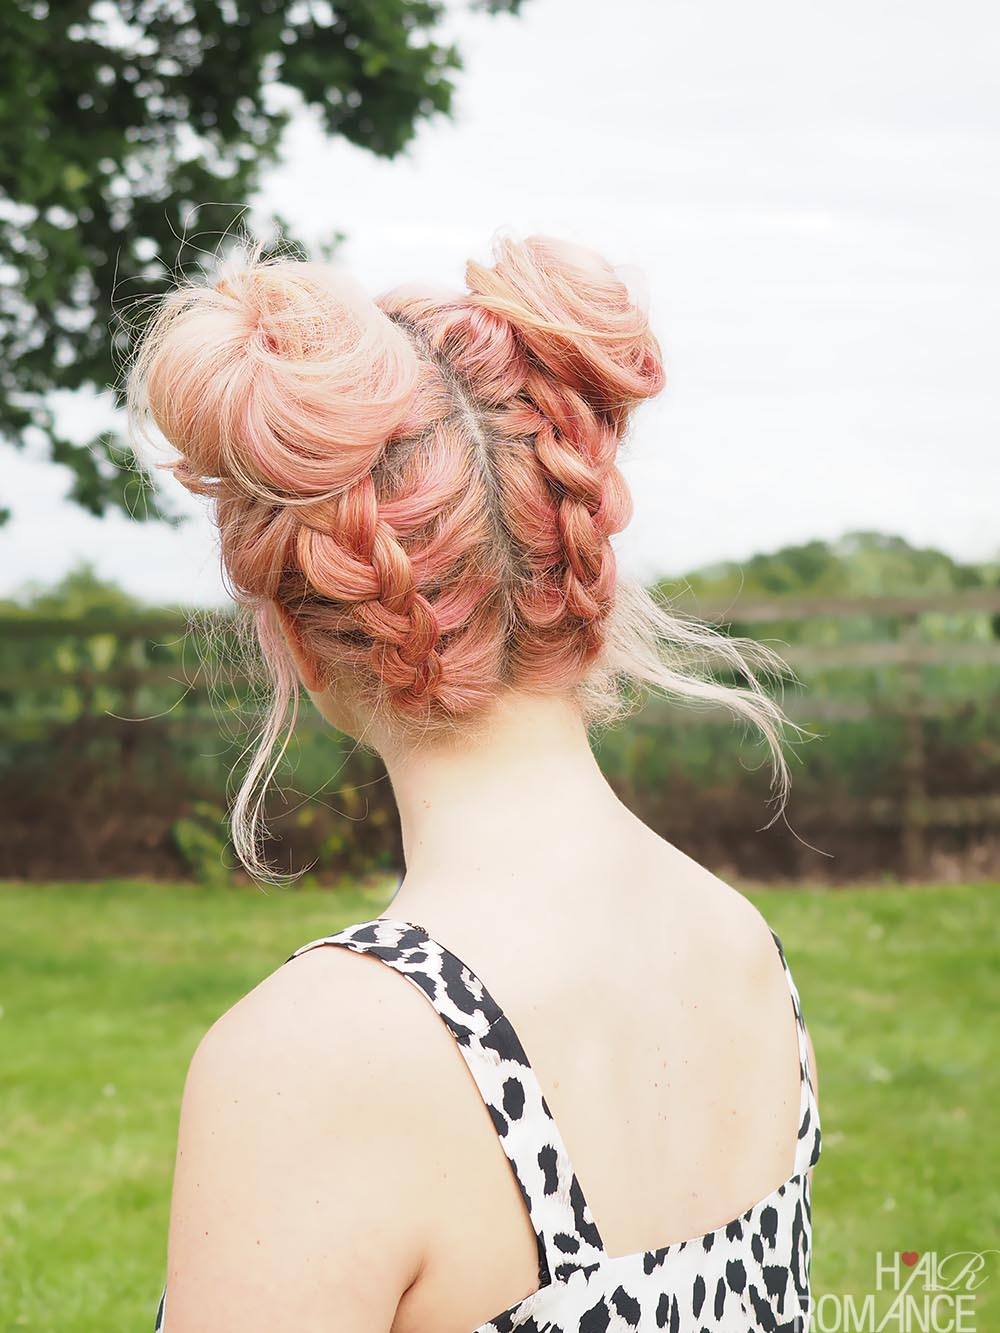 Hair romance festival hair double braided space buns tutorial